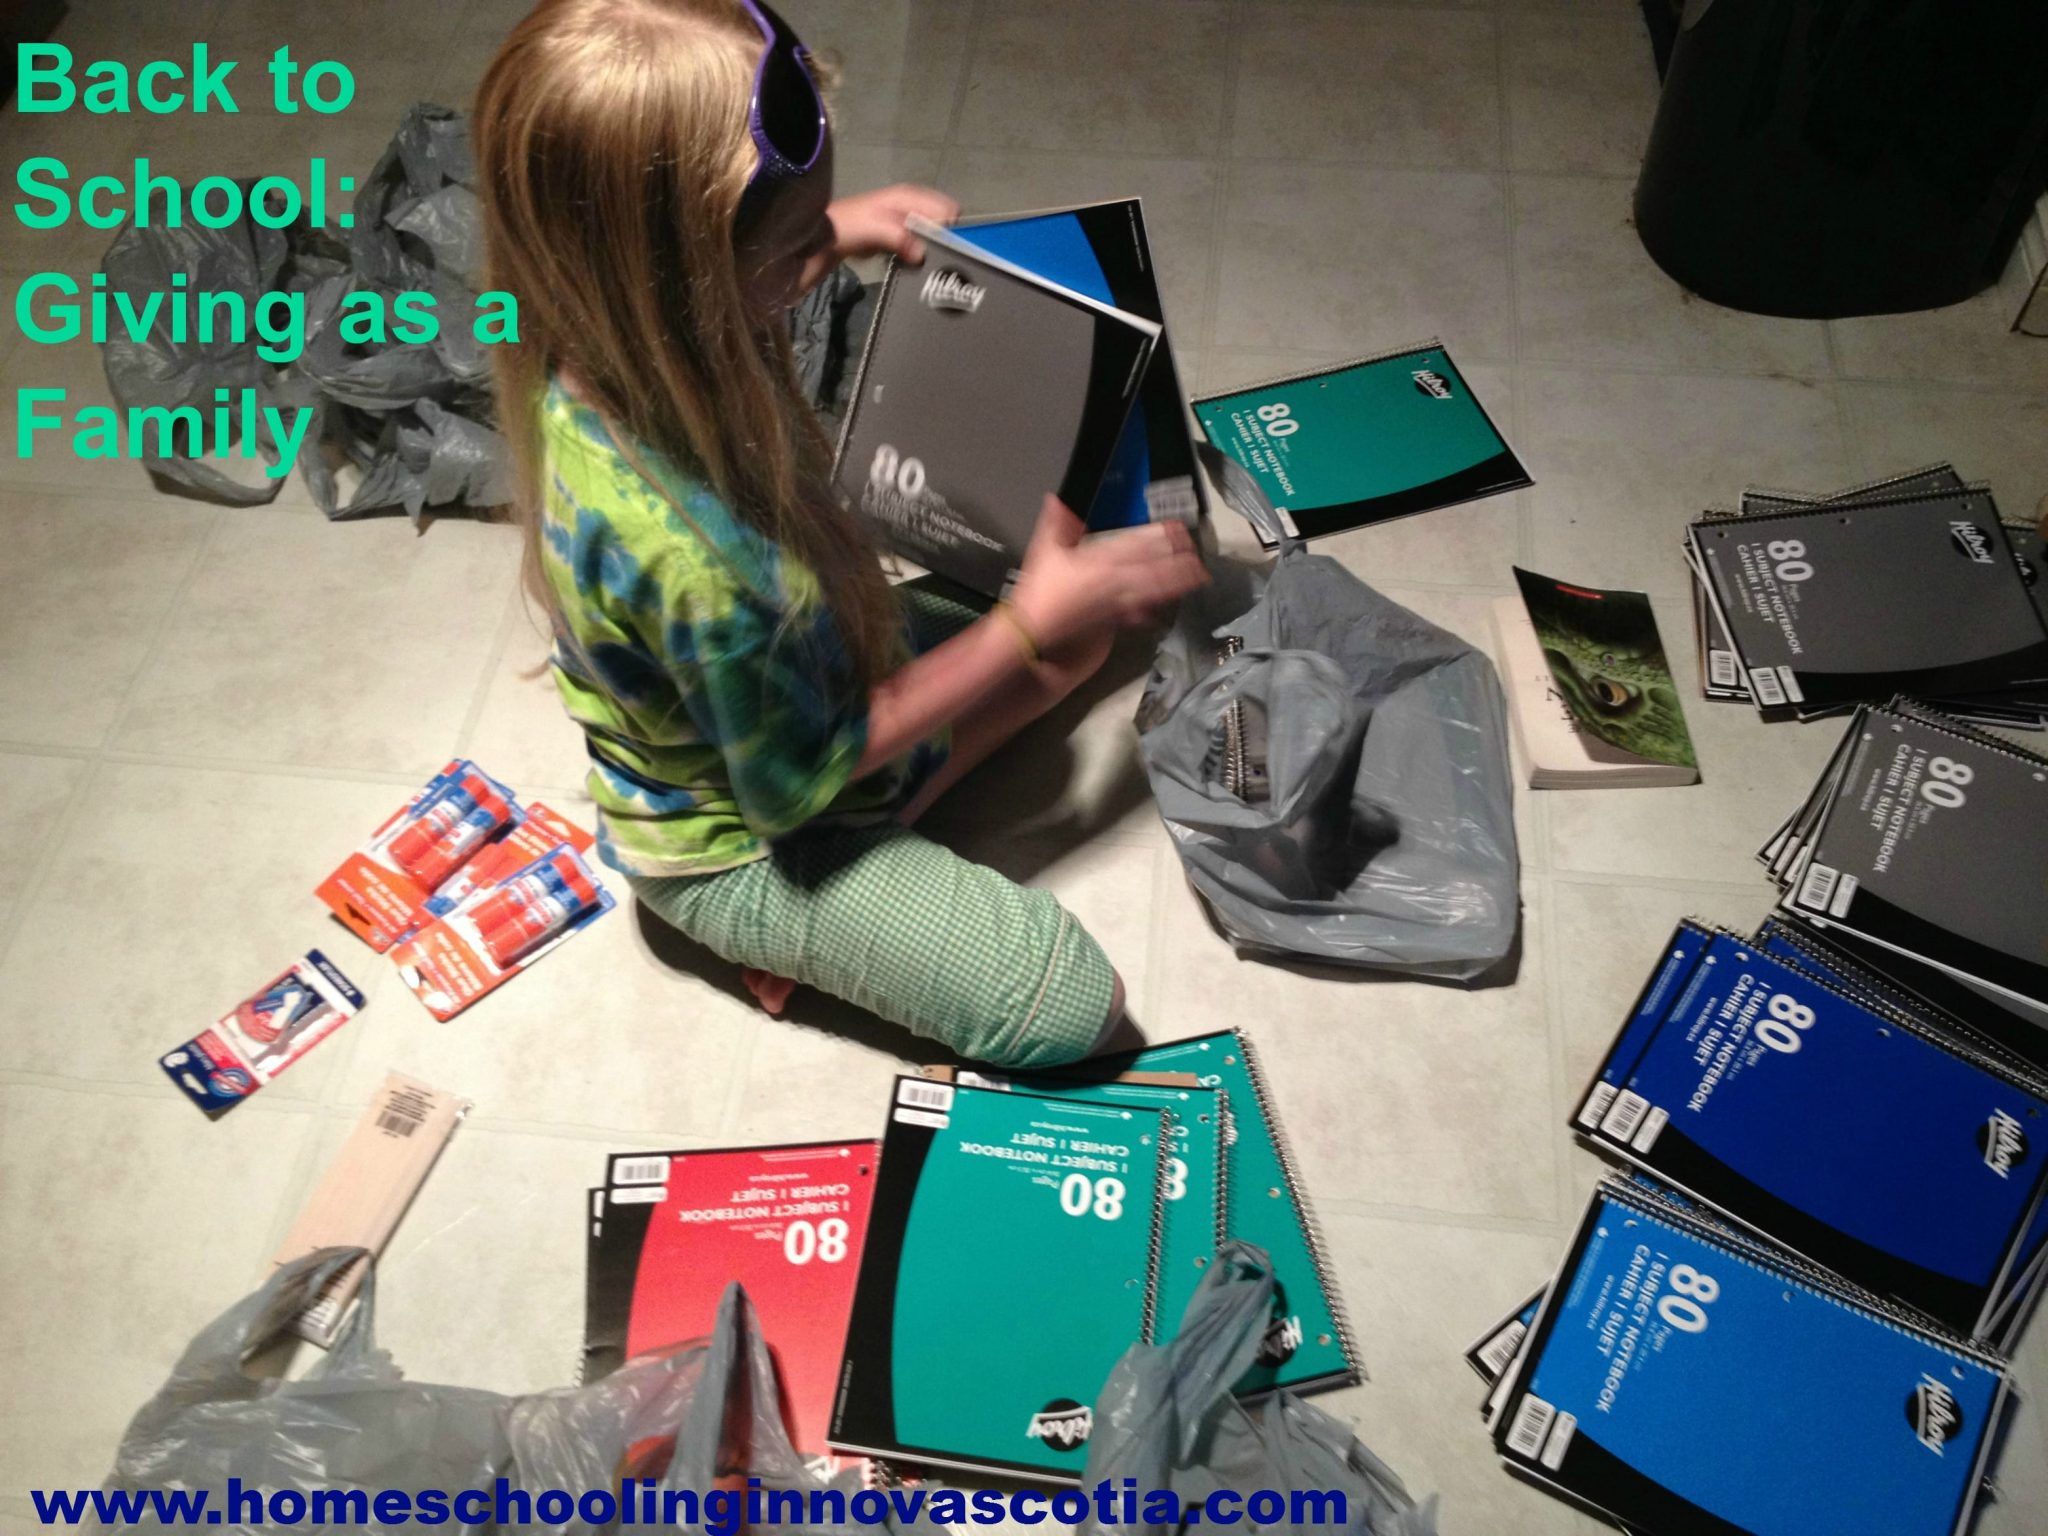 My daughter organizing supplies for charity